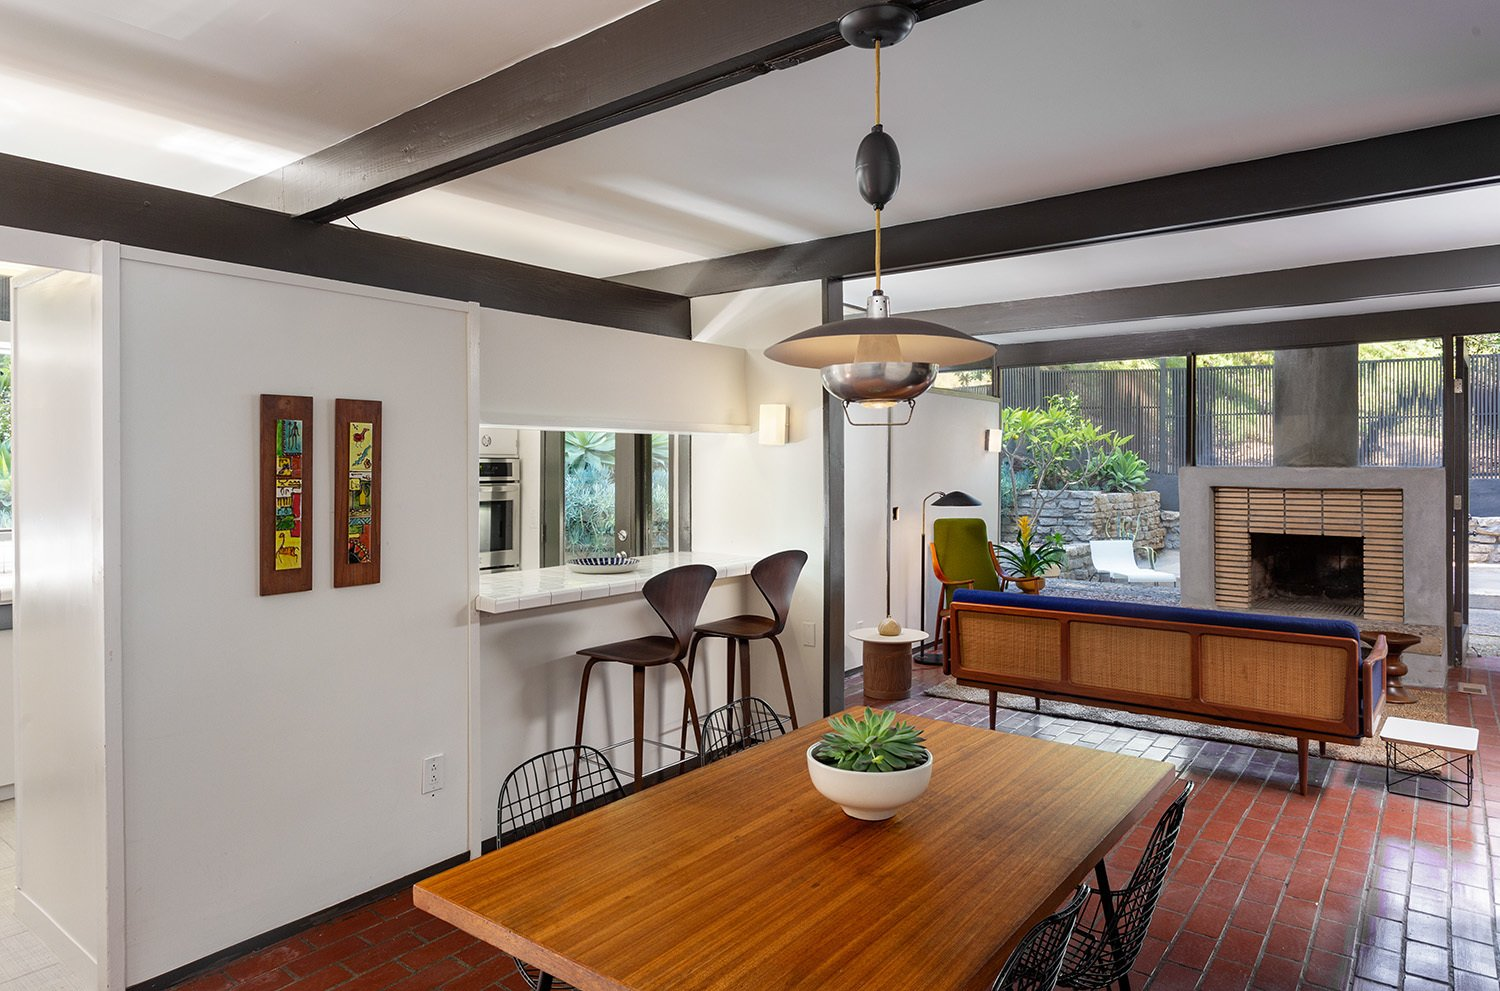 The foyer opens up into the dining and living area. Painted beams and trim highlight the structure's post-and-beam design.  Photo 4 of 17 in A Dapper Midcentury Under the Hollywood Sign Lists for $1.65M